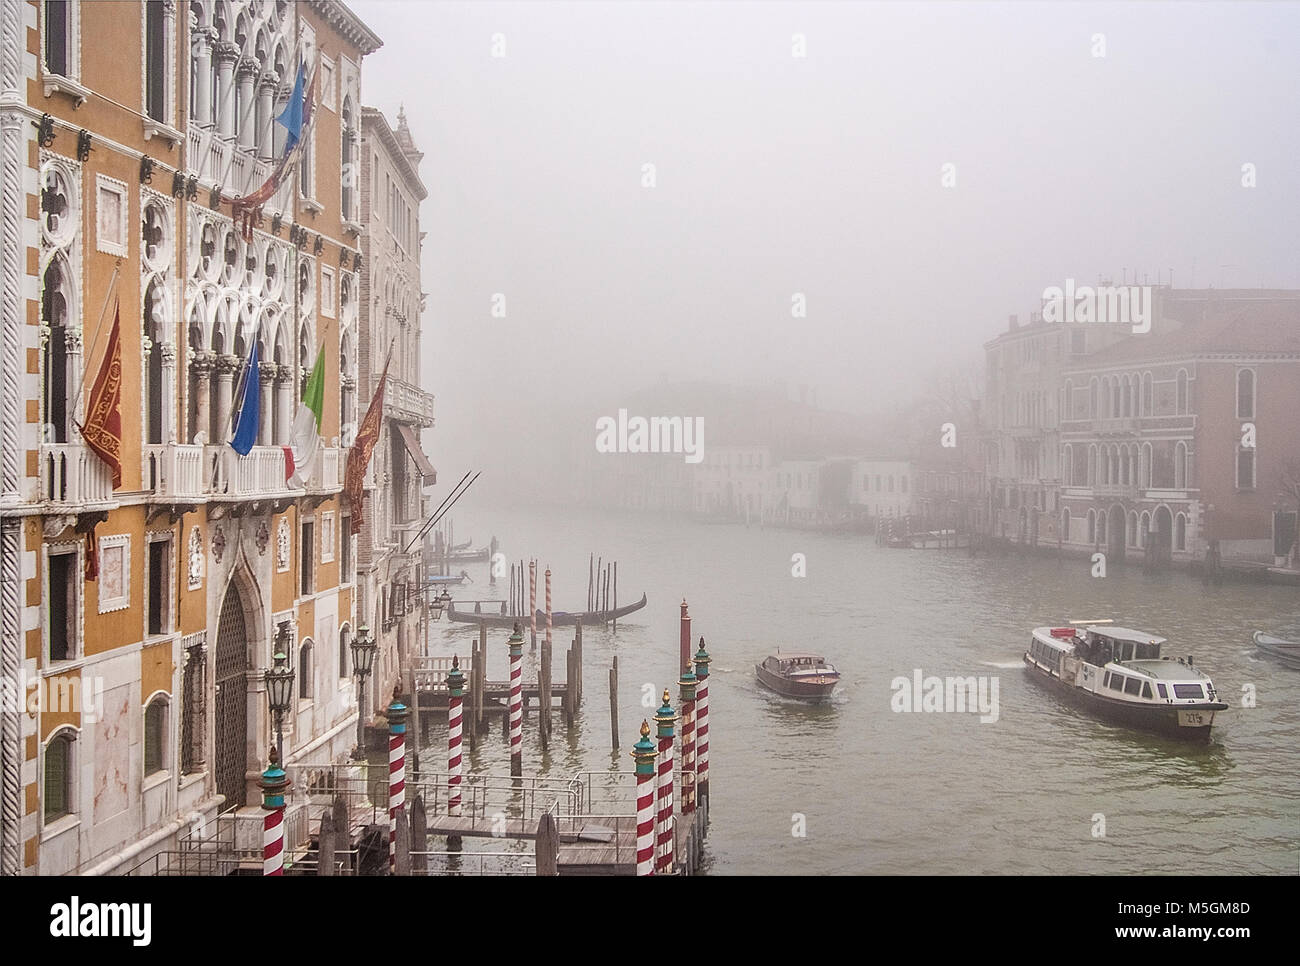 Venise, vue sur le Grand Canal Photo Stock